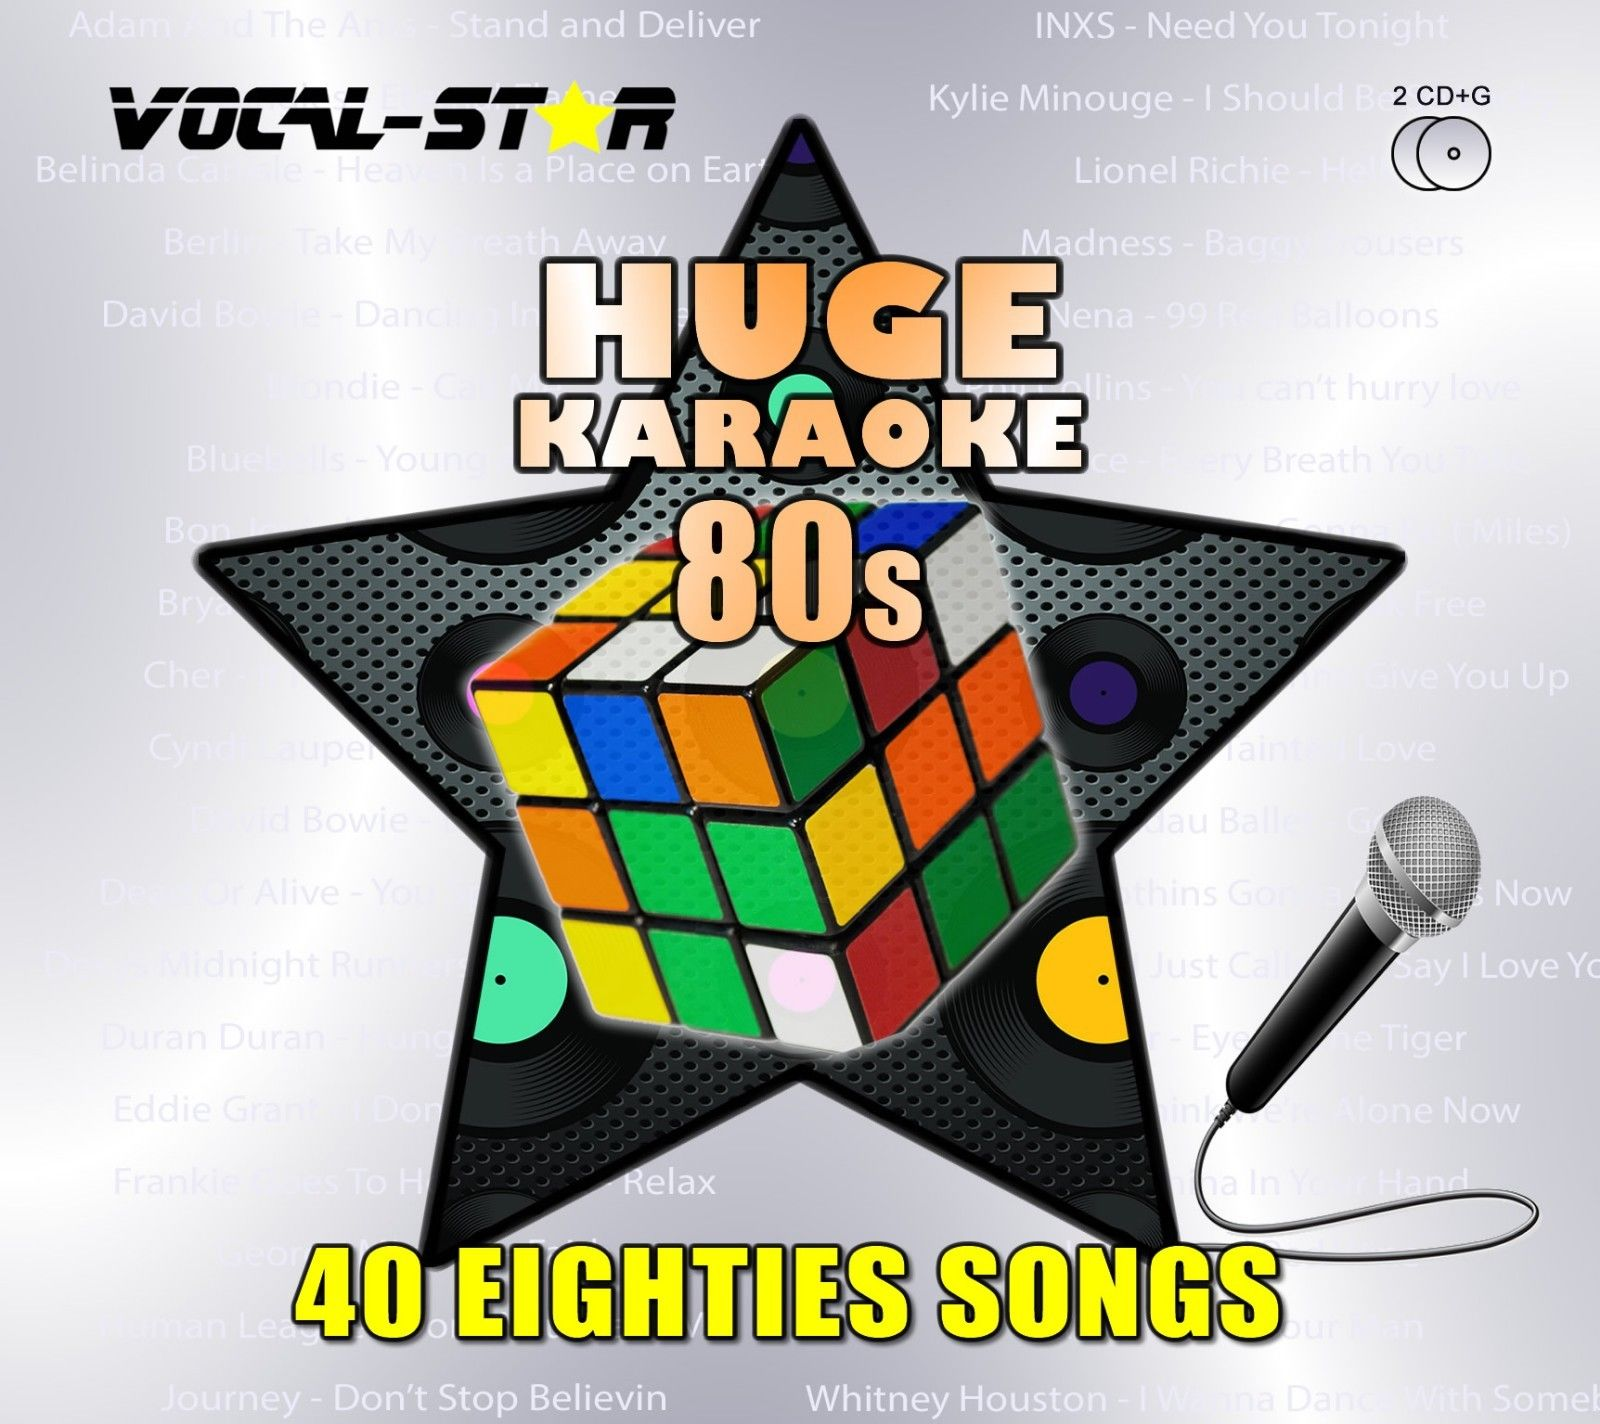 Vocal-Star Huge Karaoke Hits of 80s - 40 Songs - 2 CDG Disc Set